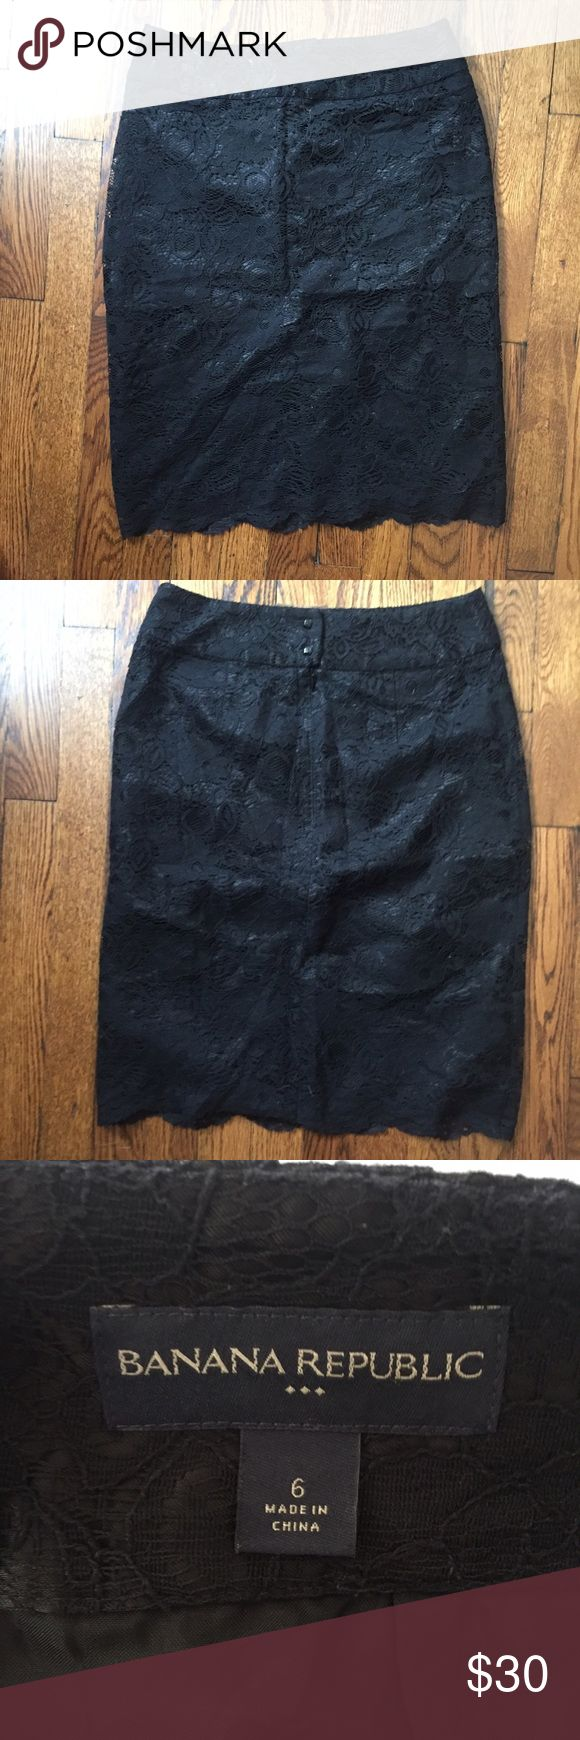 BANANA REPUBLIC skirt Black lace skirt with scalloped edge. Beautiful in great condition! Banana Republic Skirts